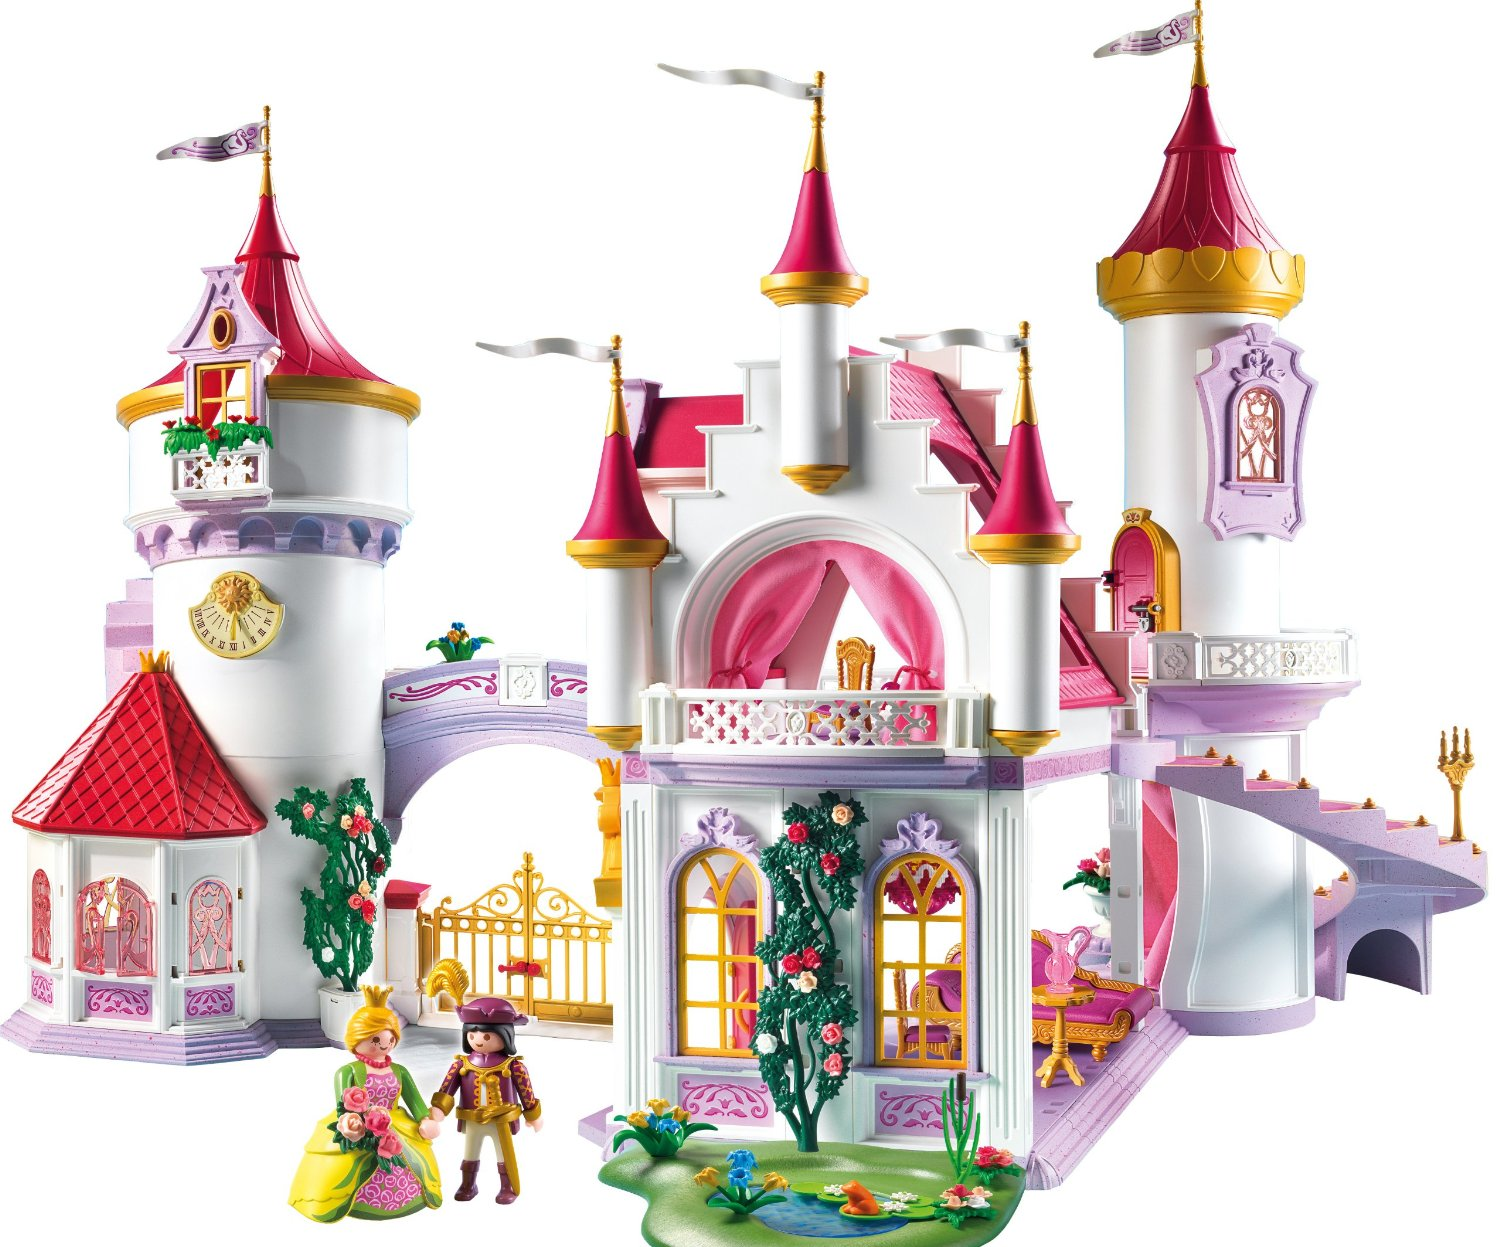 playmobil sets for girls the bestsellers